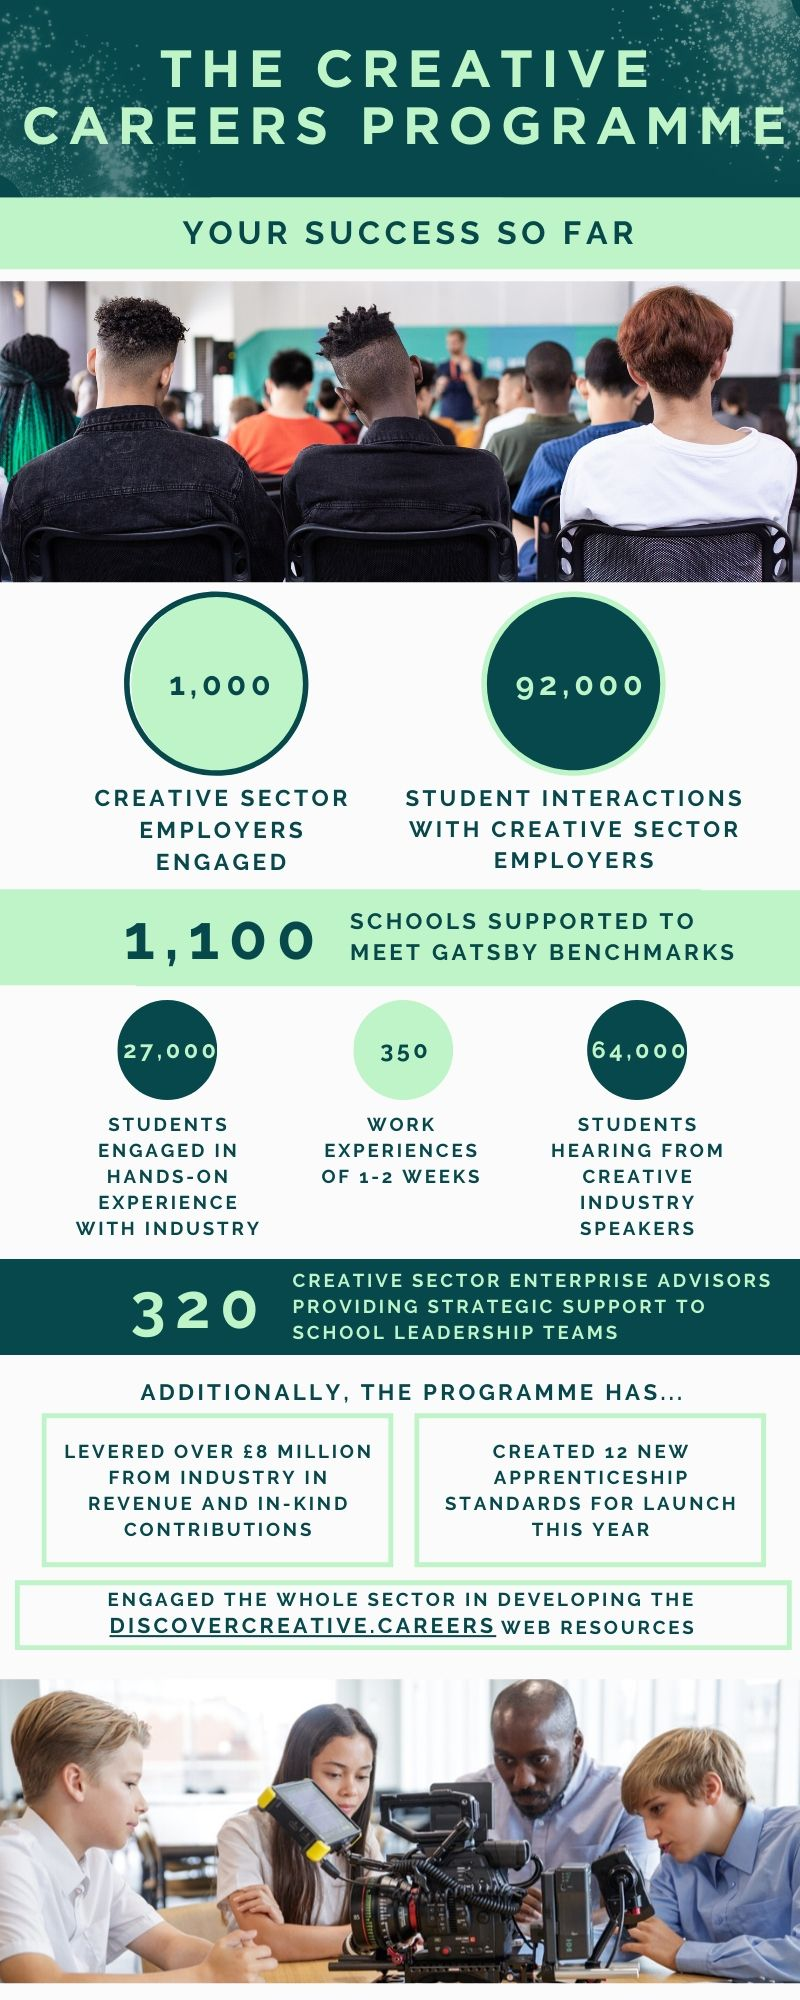 Creative Careers Programme infographic